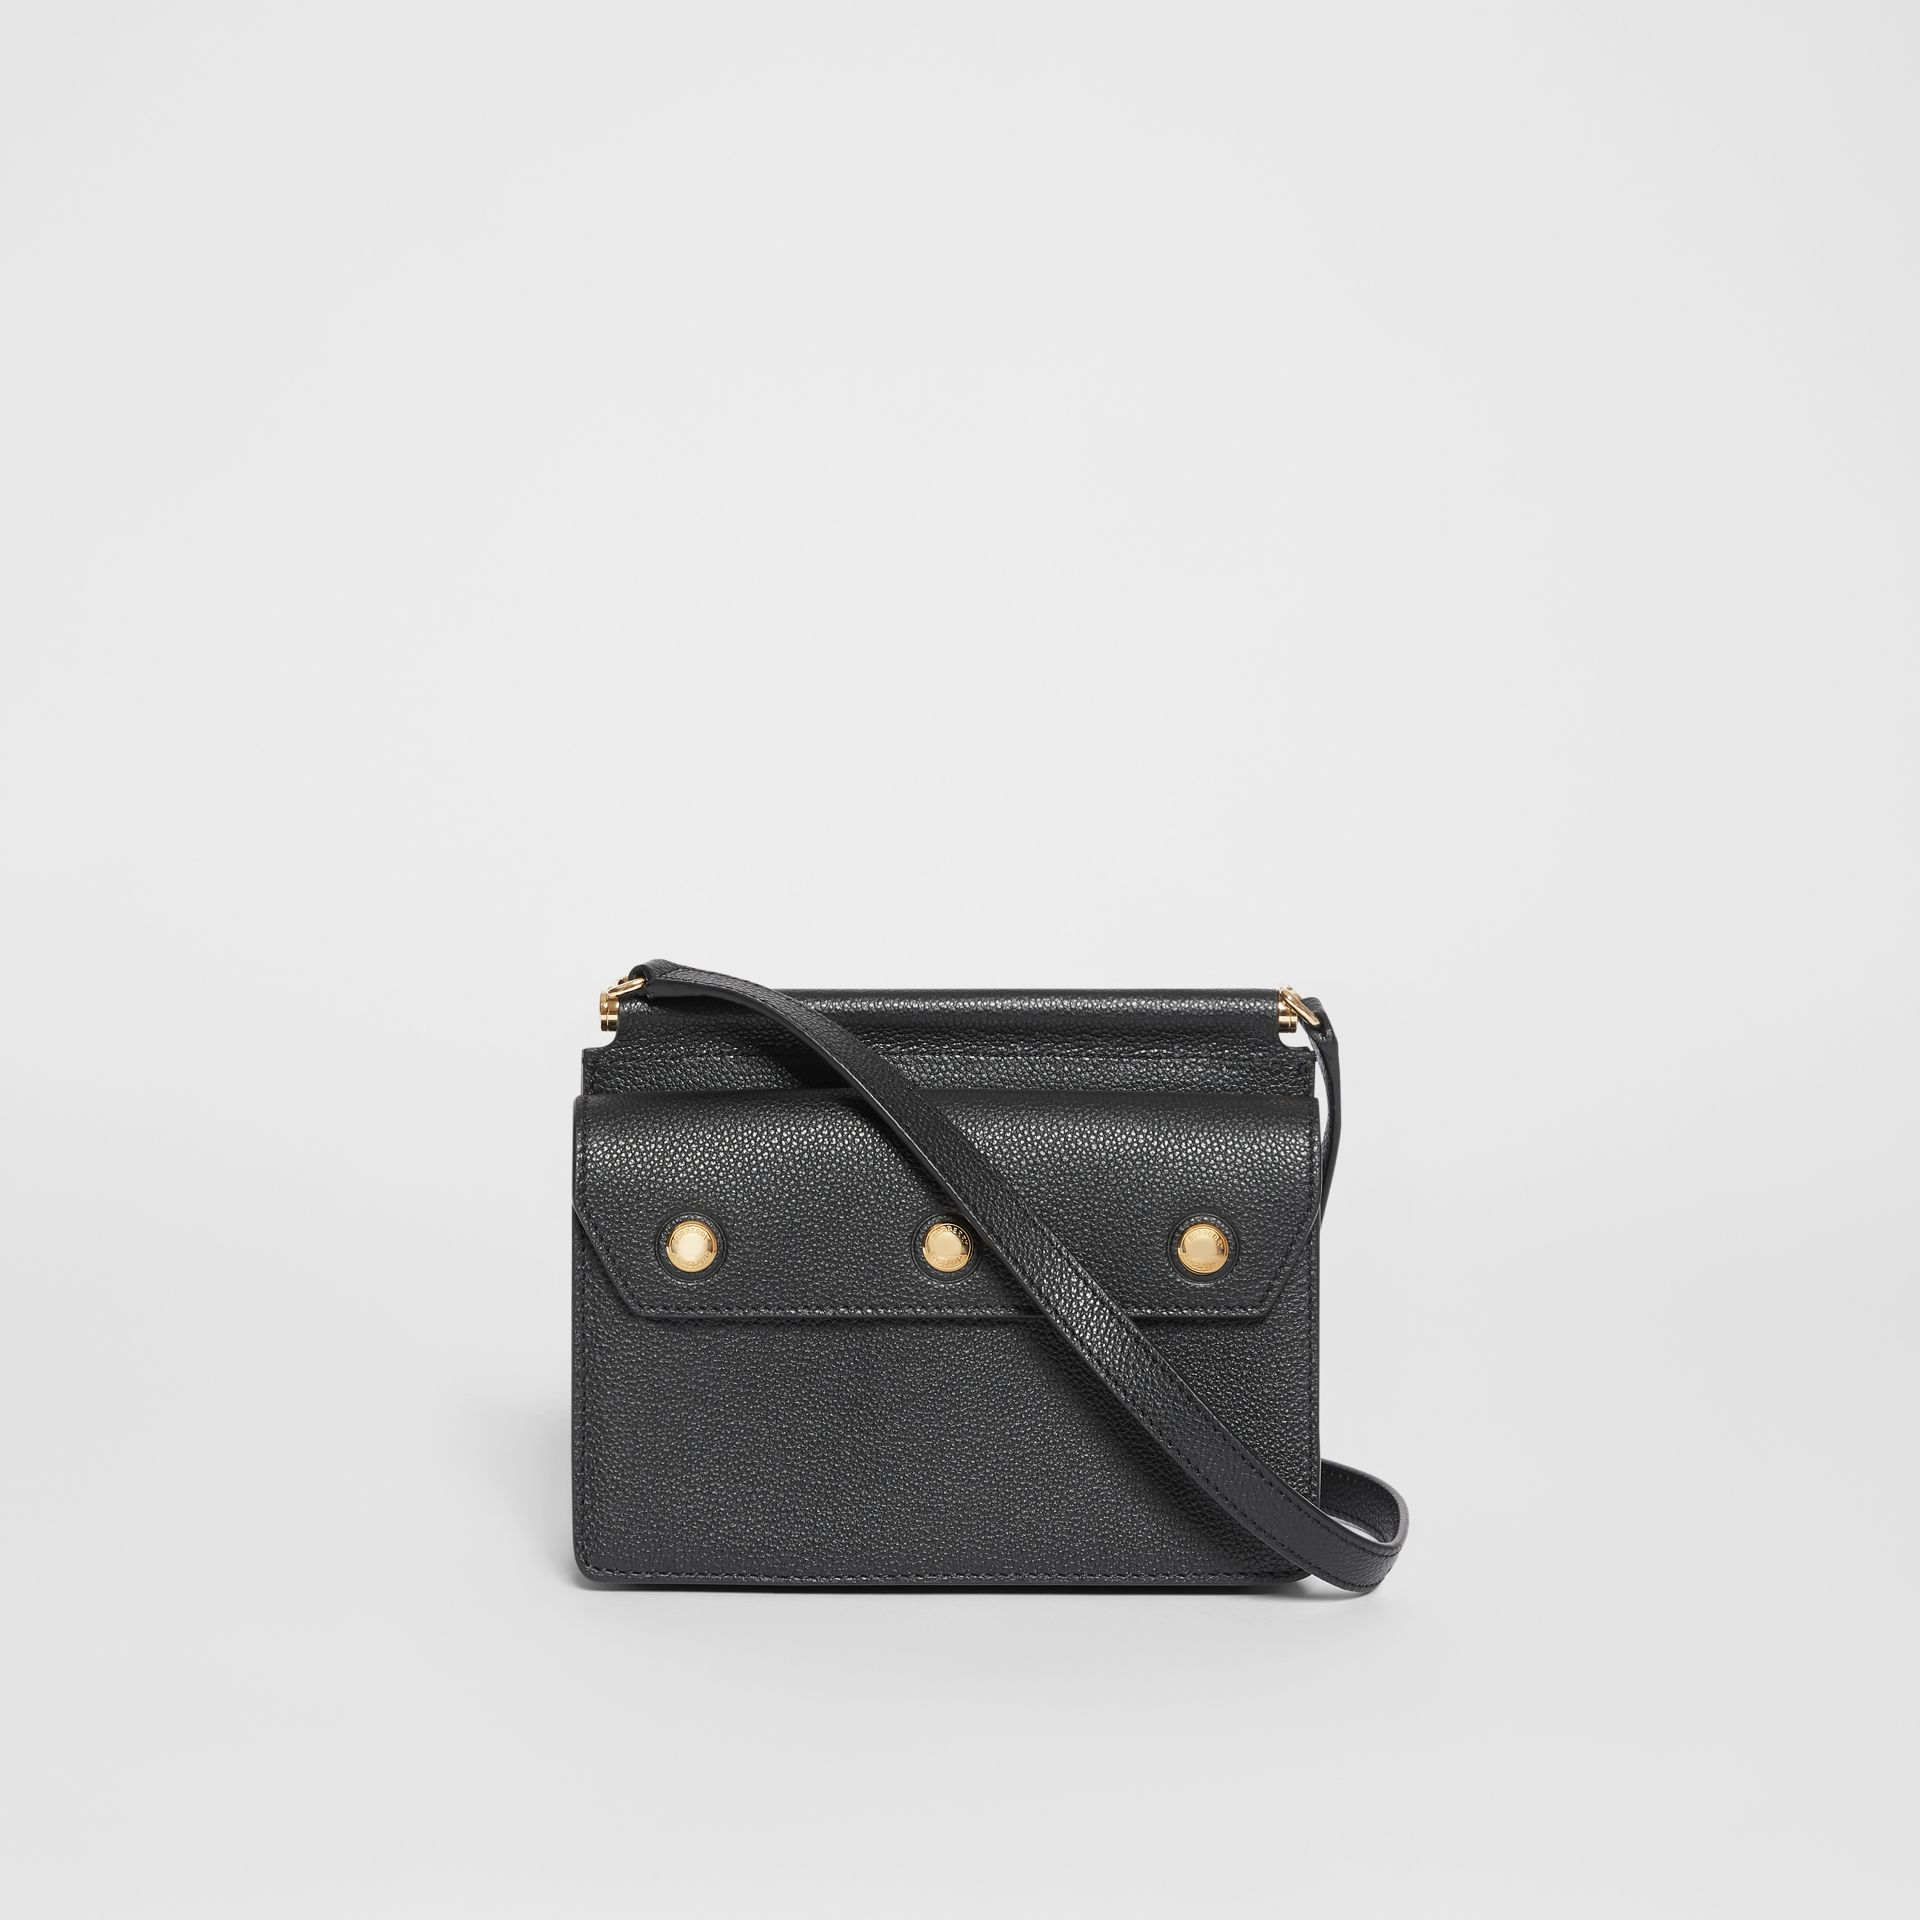 Mini Leather Title Bag with Pocket Detail in Black - Women | Burberry Singapore - gallery image 7